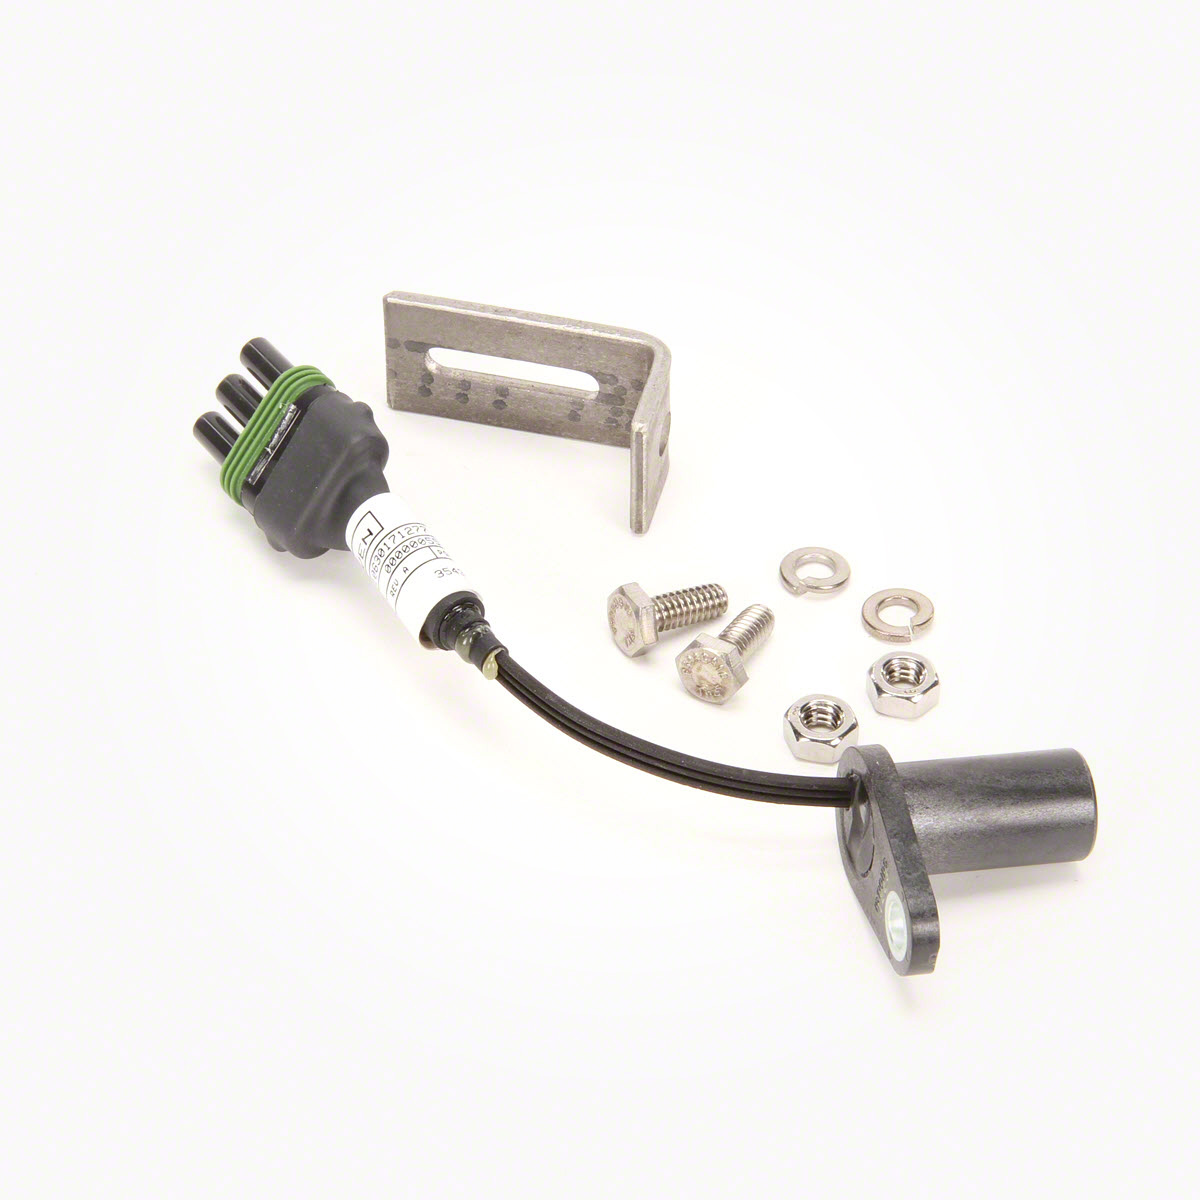 Buy Raven Precision Fan RPM Sensor Kit | SpraySmarter.com on